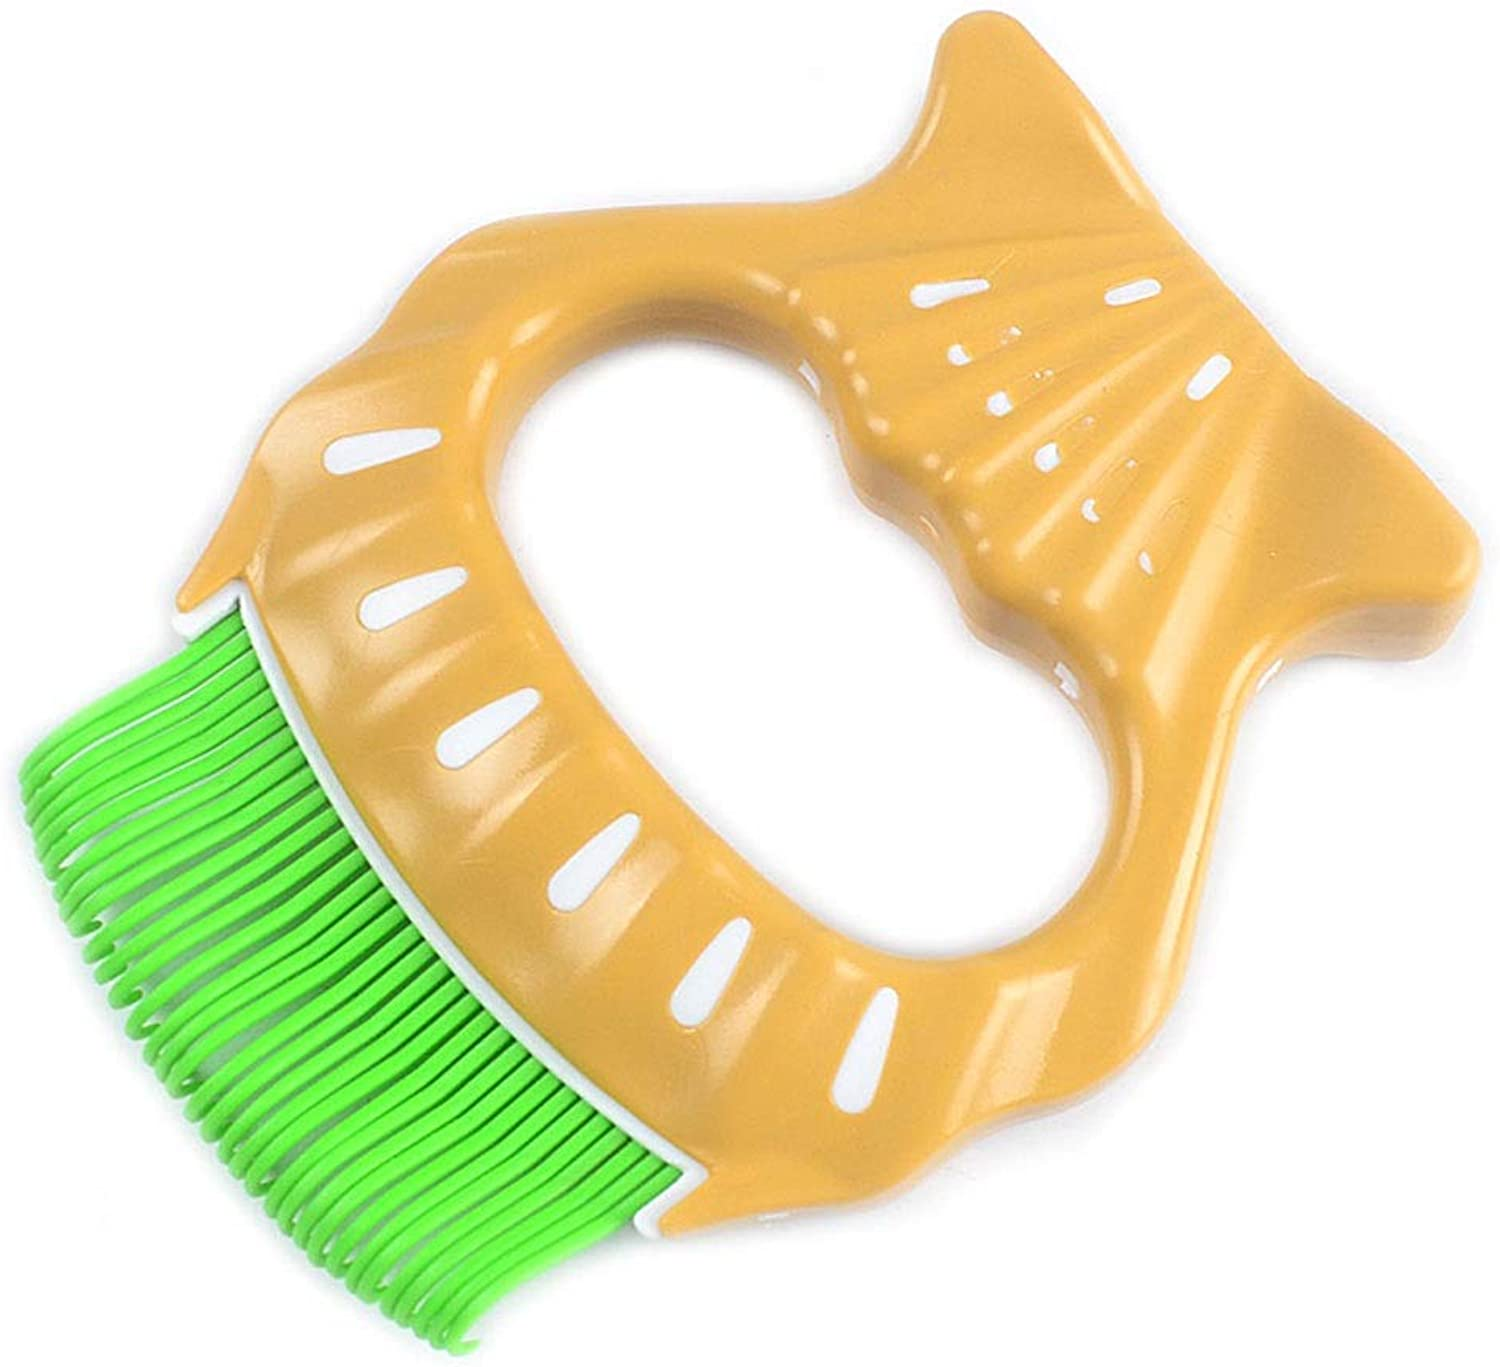 Pet Massage Brush Shell Shape ABS Material Pet Grooming Tool for Preventing Hair Knotting 3 Models for Different Types of Cats and Dogs (color   C)